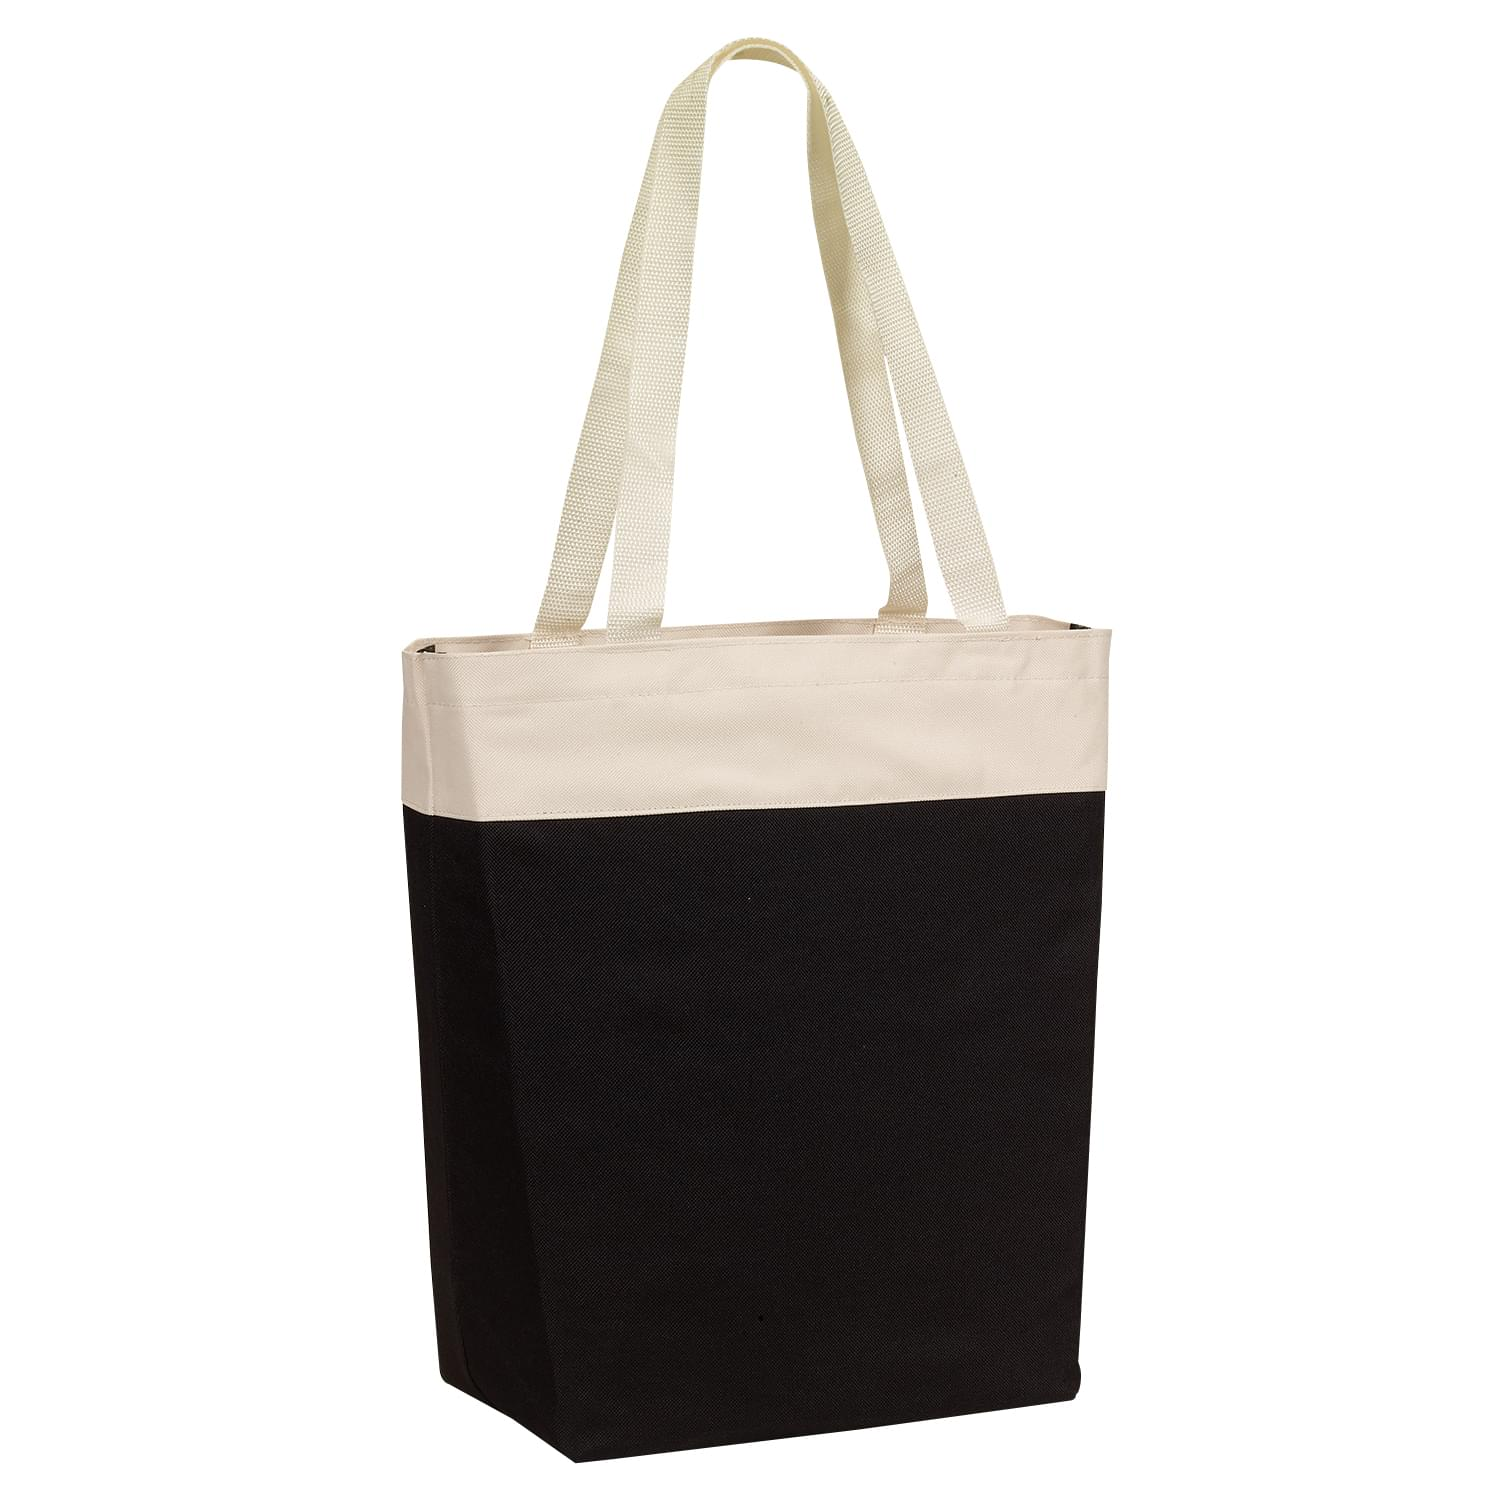 Travelstar Color Top Tote Bags